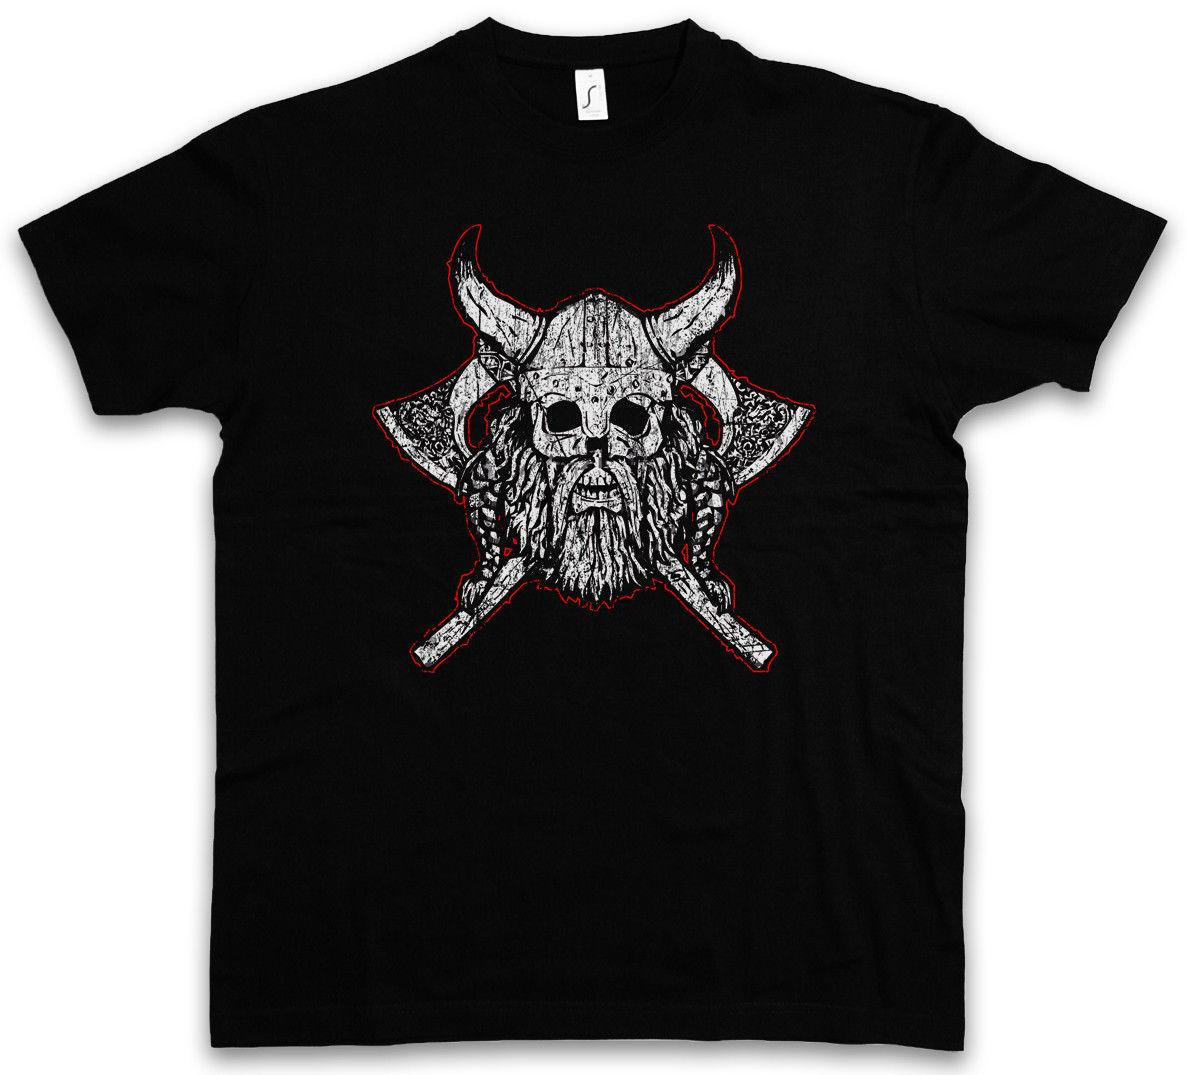 e9d347ee9 Viking Skull Vii T Shirt Runes Valhall Valhalla Odin Thor Norse Vikings  Boat Cool Casual Pride T Shirt Men Unisex New Fashion Hilarious Shirts  Funky T ...